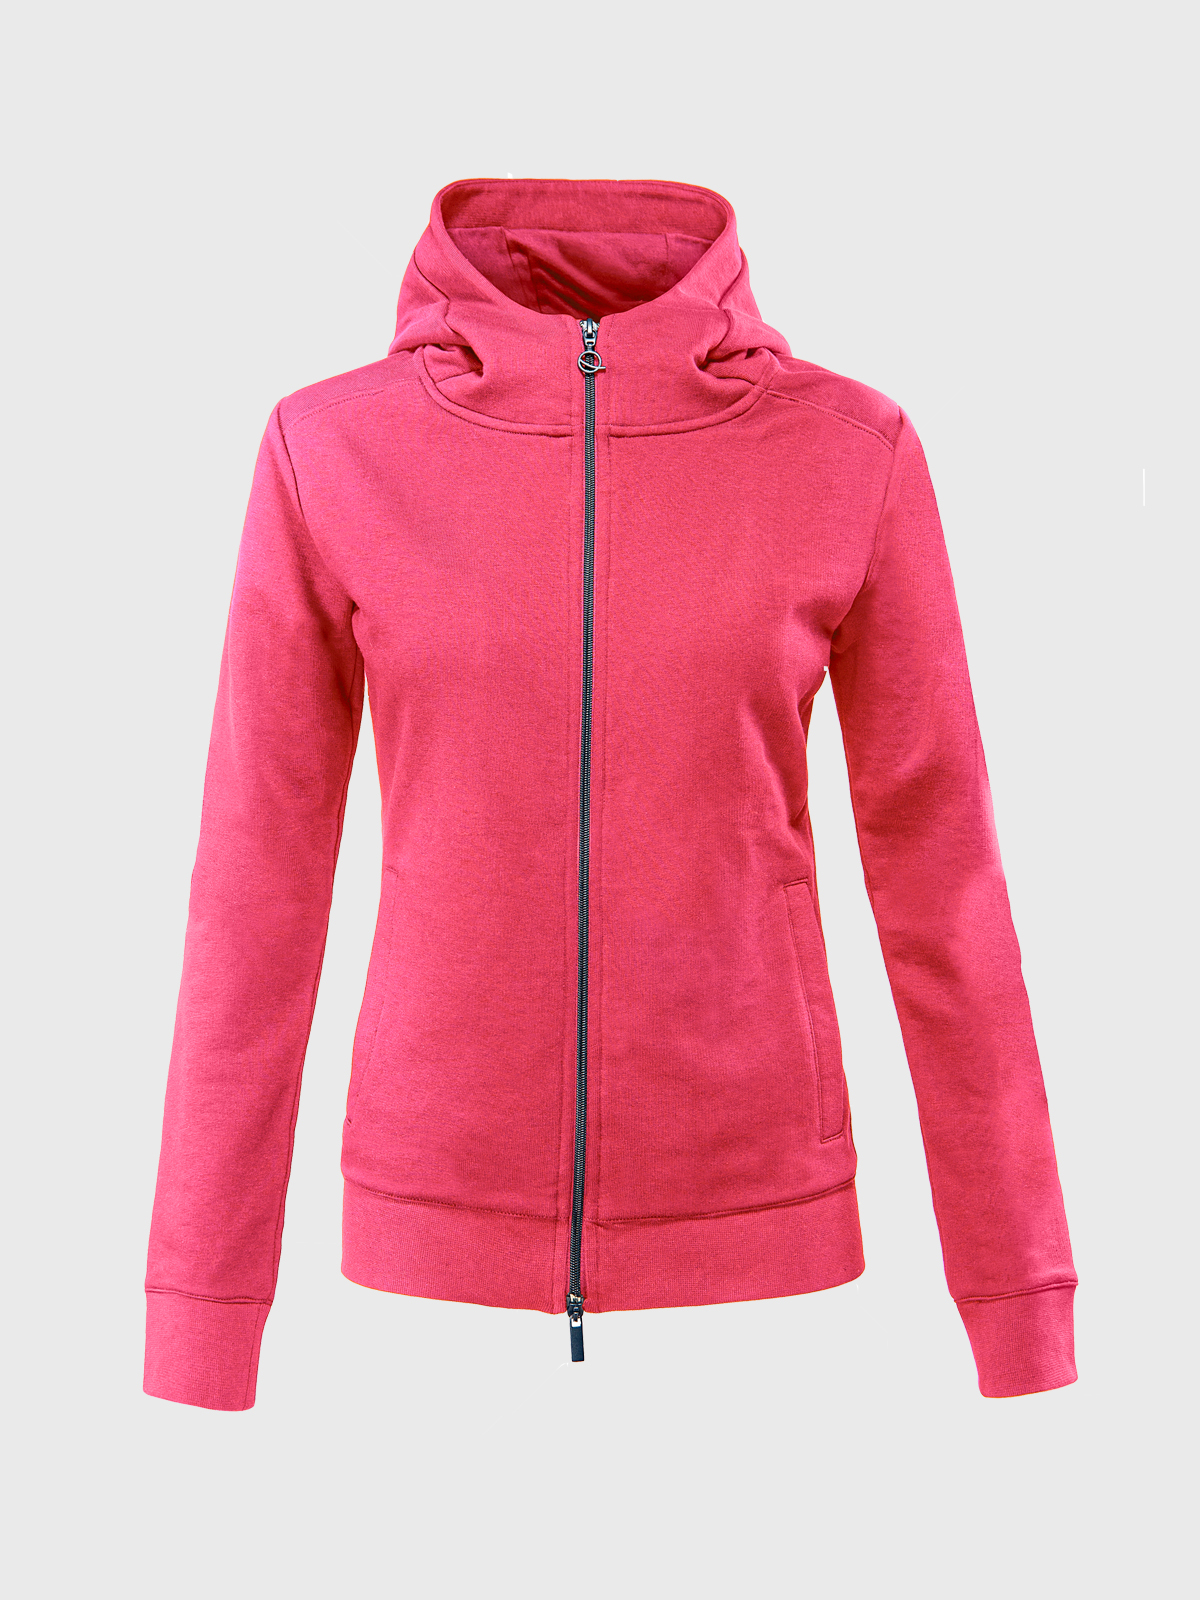 EQODE WOMEN'S FULL-ZIP FLEECE HOODIE 4